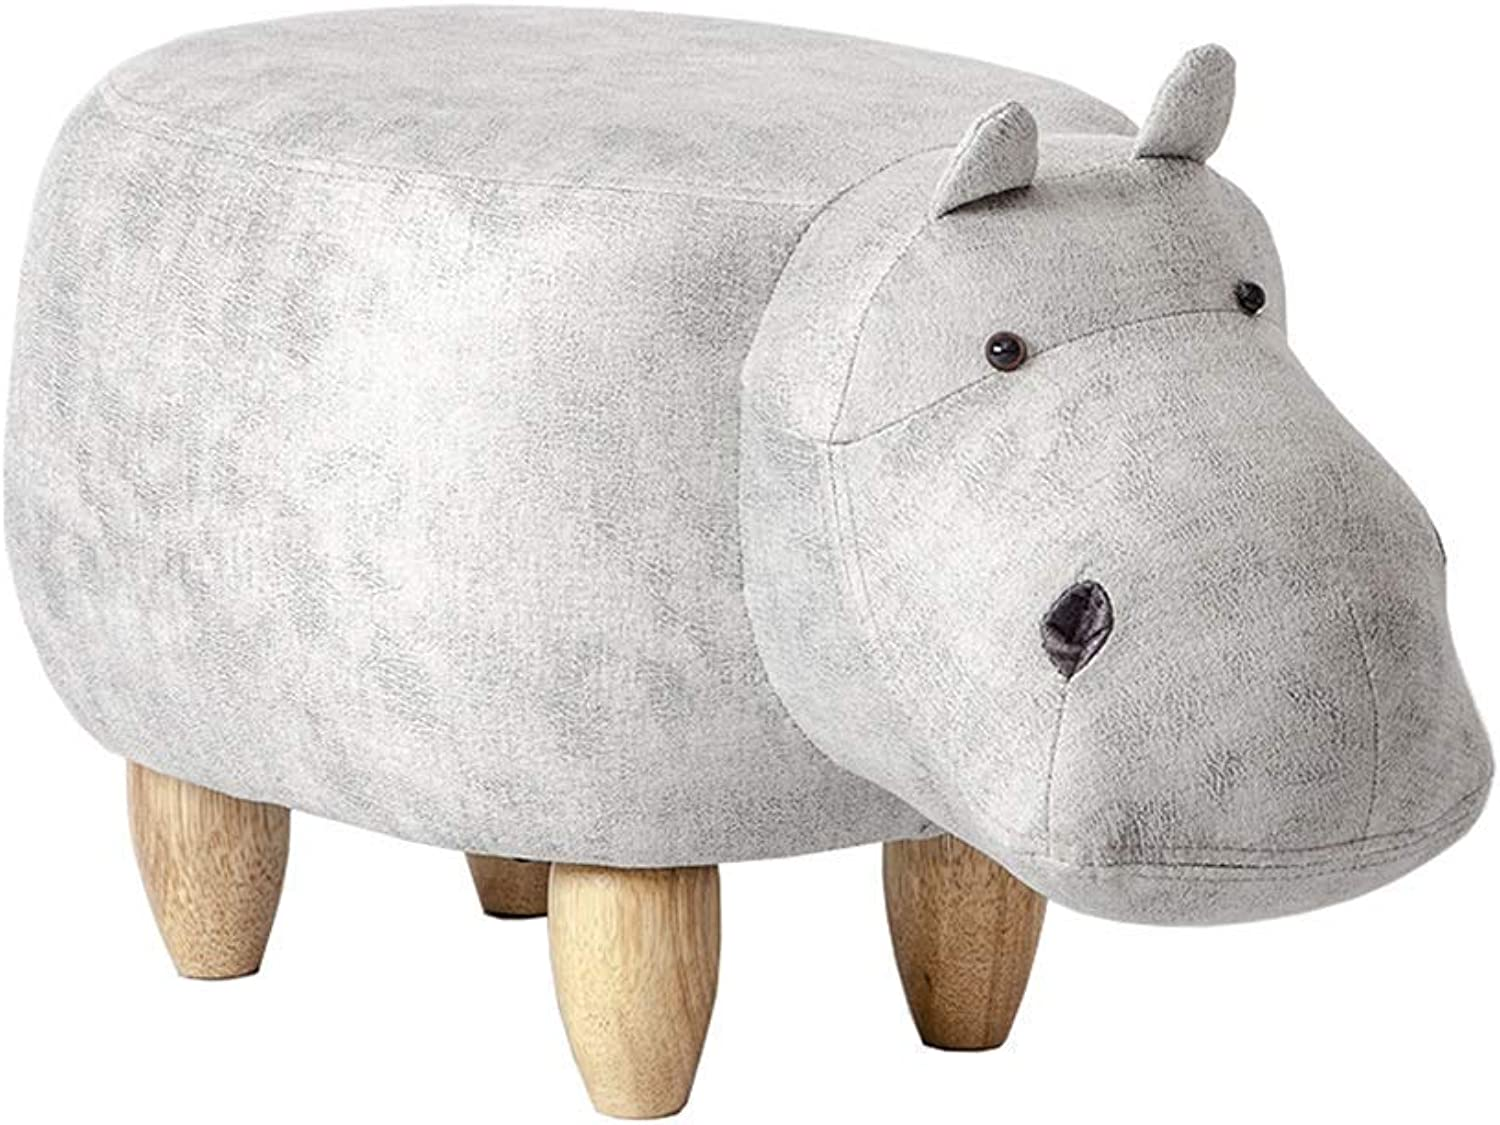 Nwn Creative Hippo Modeling Footstool Storage Stool, Wooden Cartoon shoes Bench Sofa Stool Changing shoes (Size   Footstool)